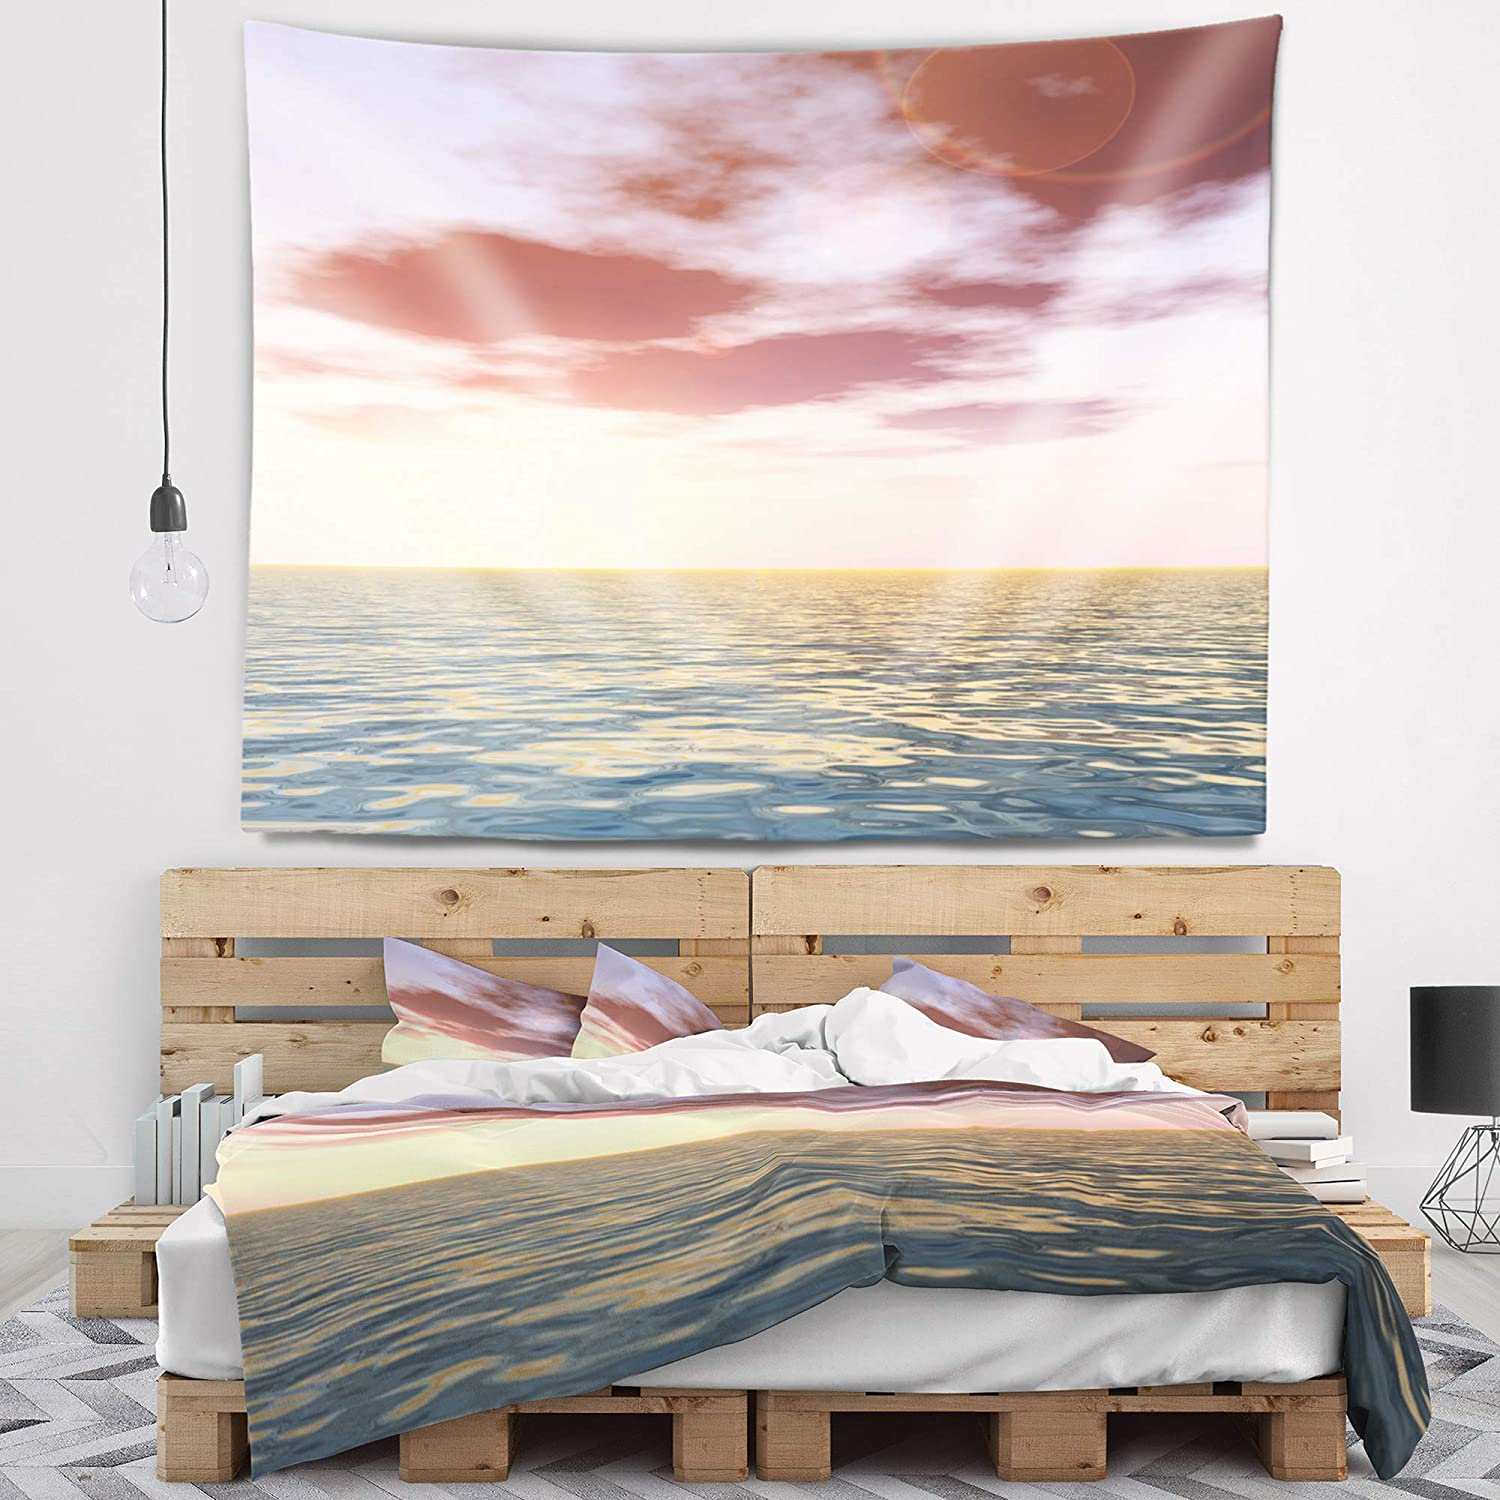 x 50 in Designart TAP10525-60-50  Purple Tinged Atlantic Seashore Seascape Blanket D/écor Art for Home and Office Wall Tapestry Large in 60 in